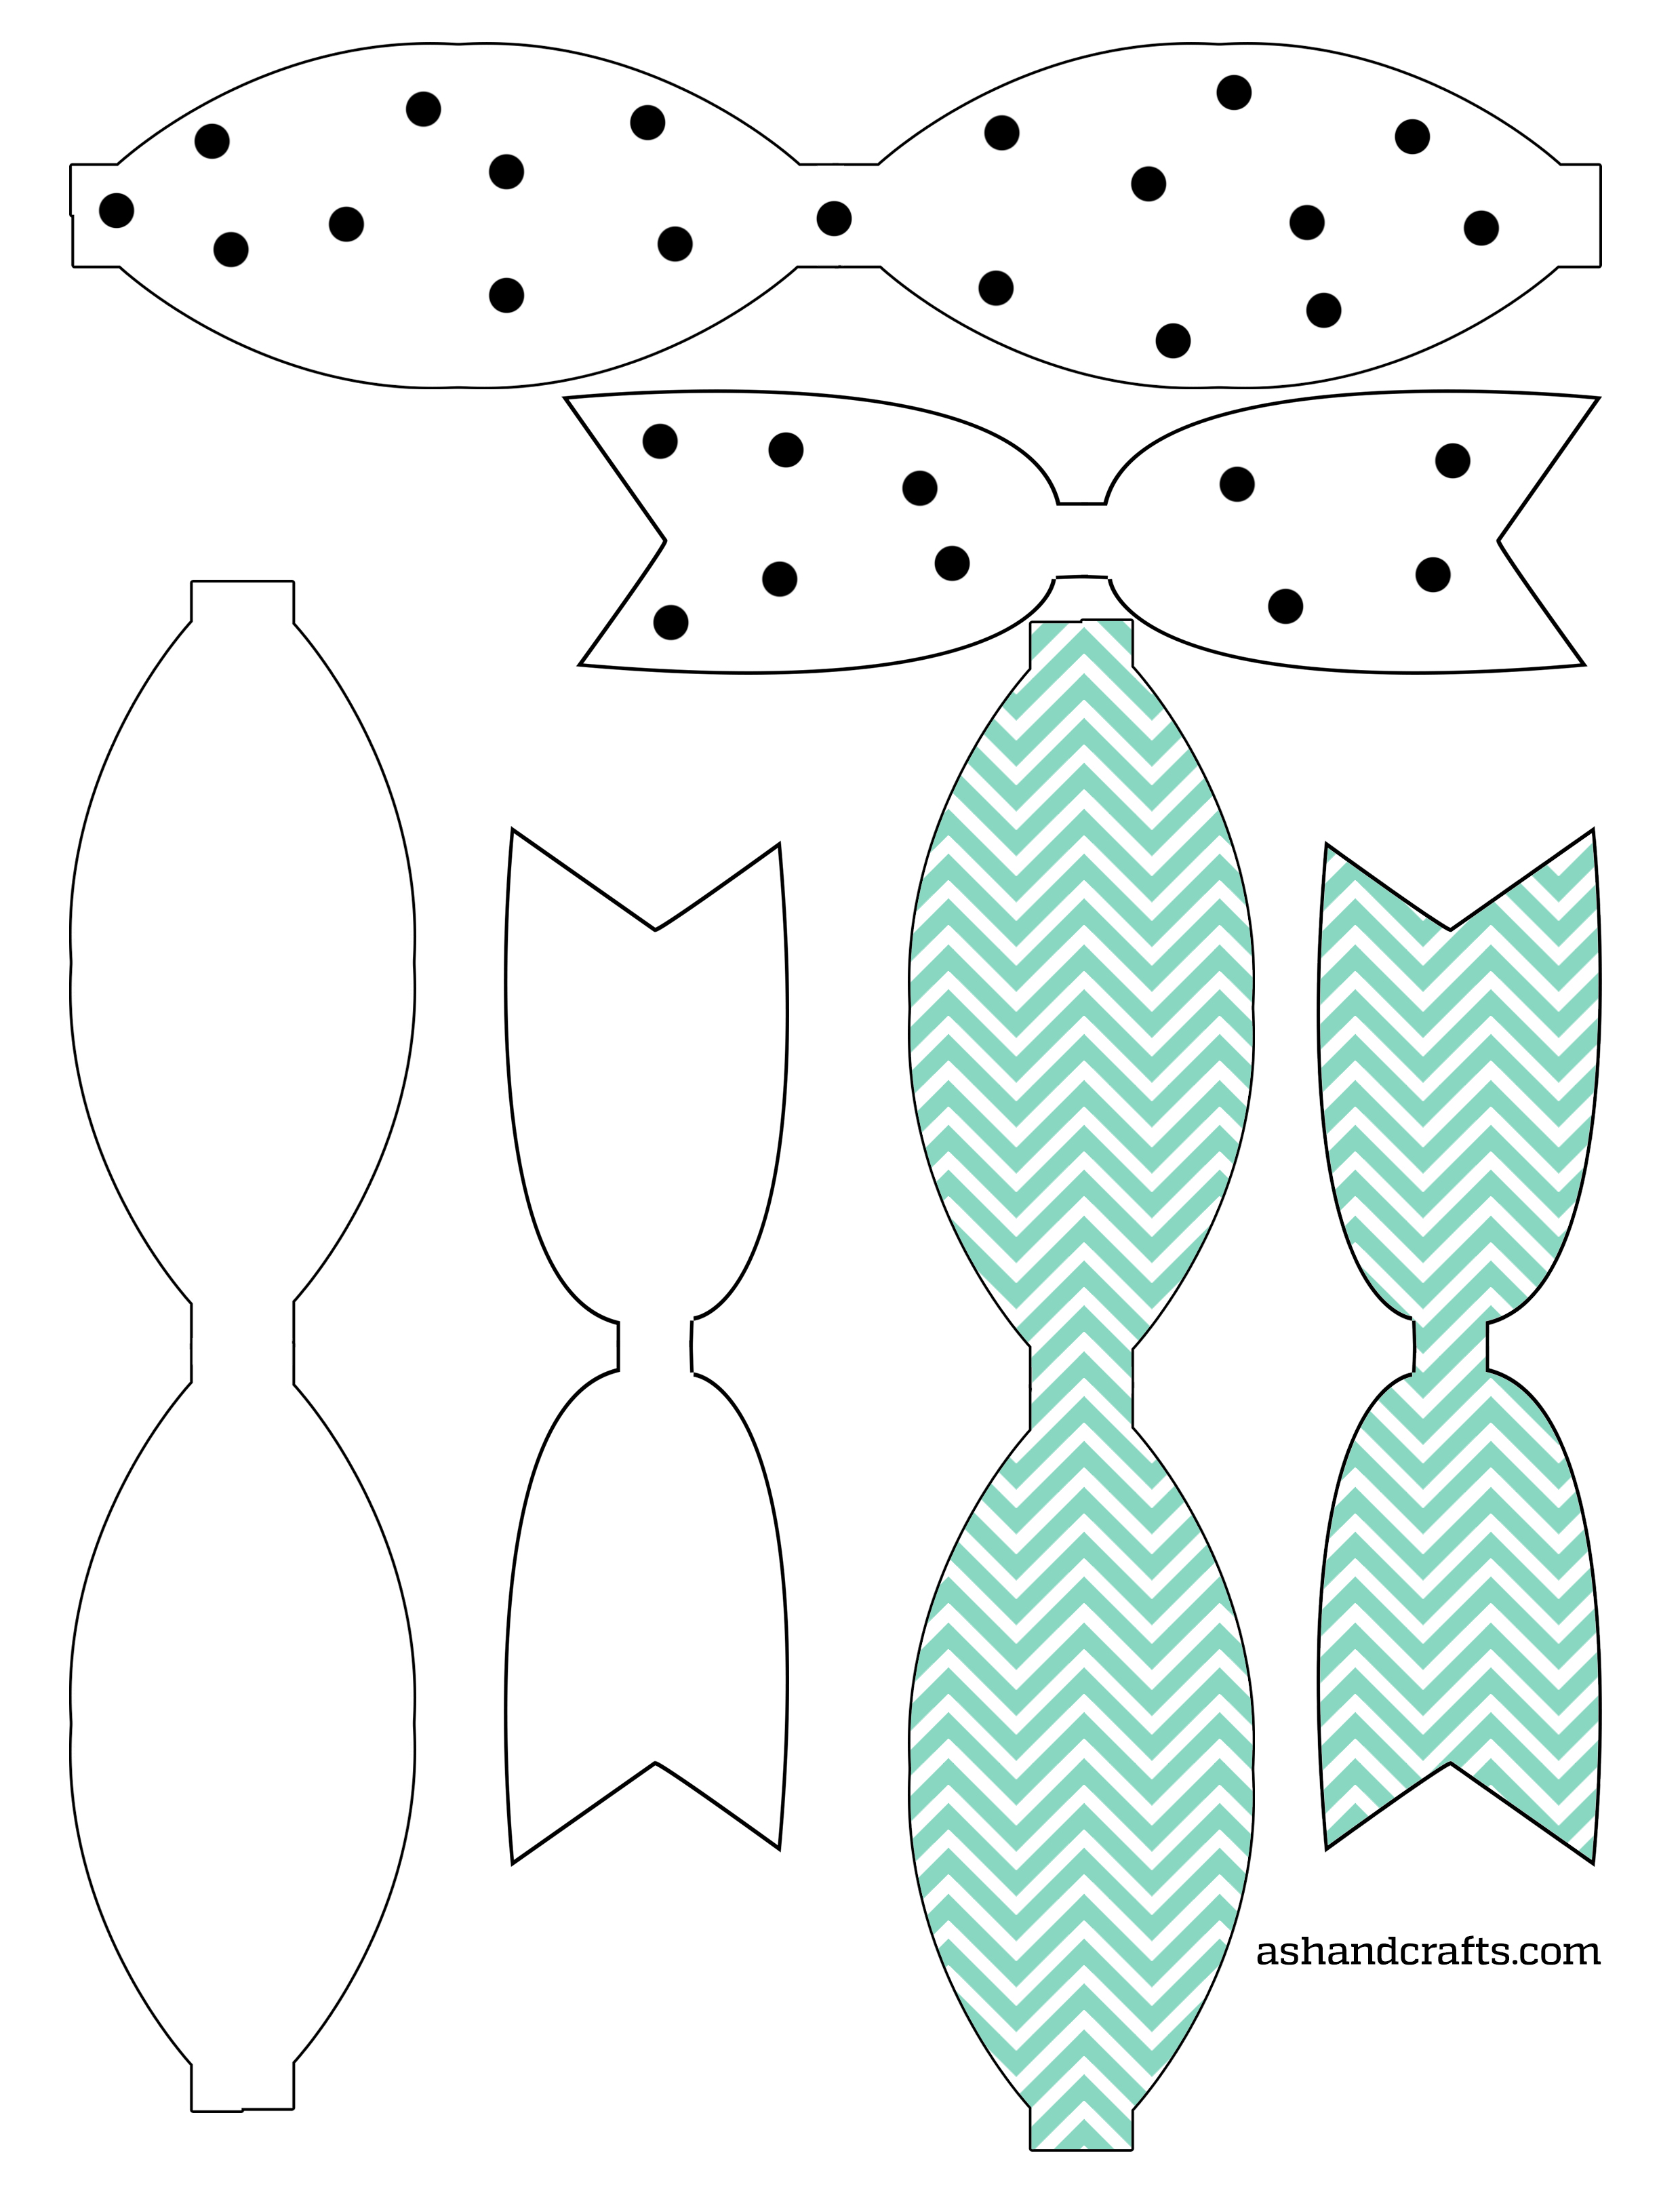 photograph regarding Bow Template Printable identified as Freebie Friday: Printable Paper Bows - Ash and Crafts